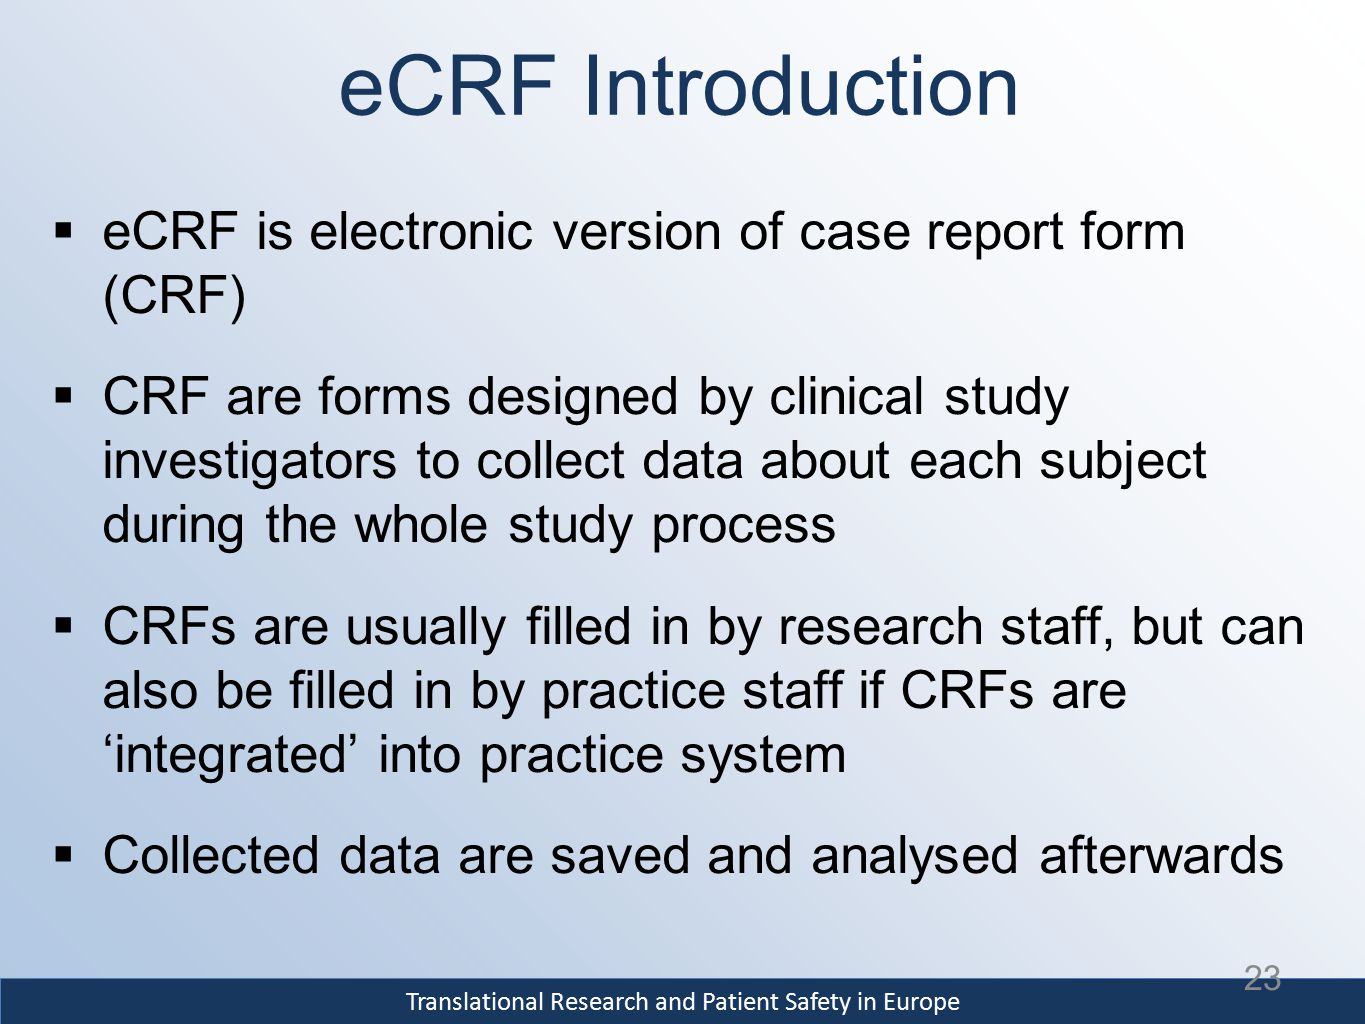 Translational Research and Patient Safety in Europe eCRF Introduction  eCRF is electronic version of case report form (CRF)  CRF are forms designed by clinical study investigators to collect data about each subject during the whole study process  CRFs are usually filled in by research staff, but can also be filled in by practice staff if CRFs are 'integrated' into practice system  Collected data are saved and analysed afterwards 23